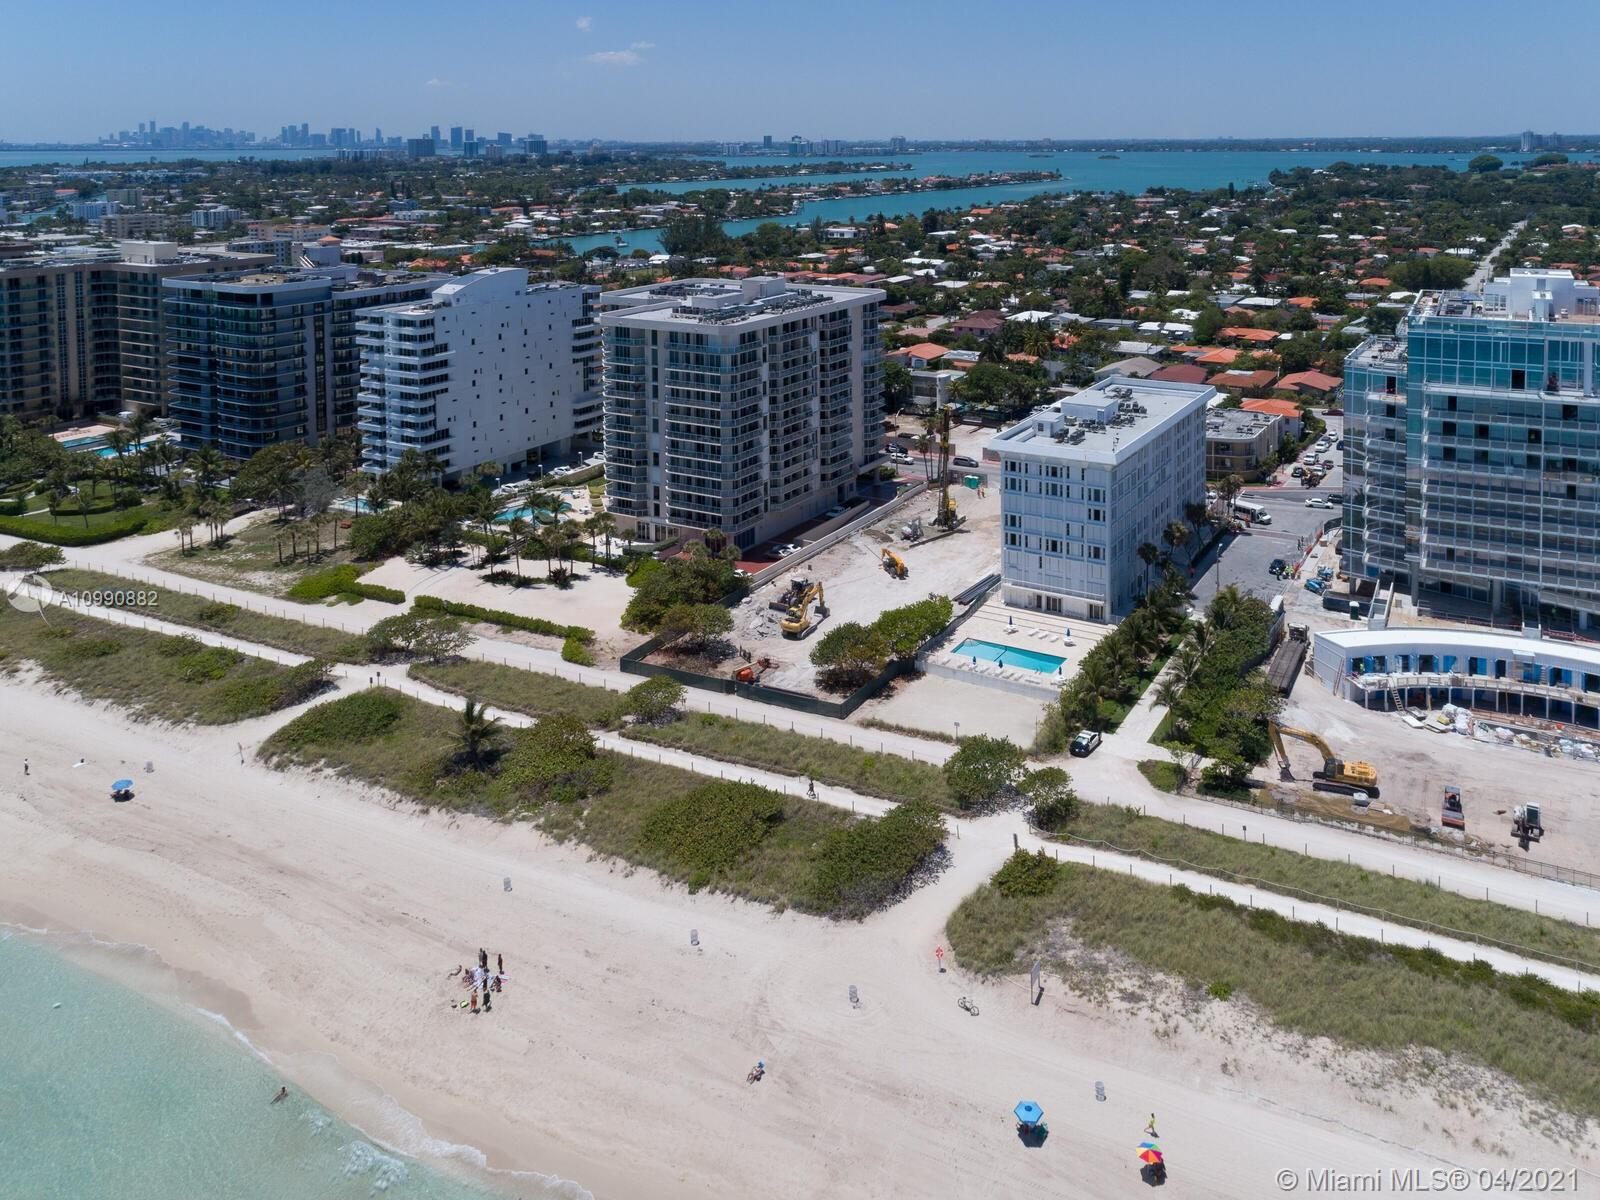 Photo of 8925 Collins Ave #2H, Surfside, Florida, 33154 - Aerial of Mirage and surrounding area.